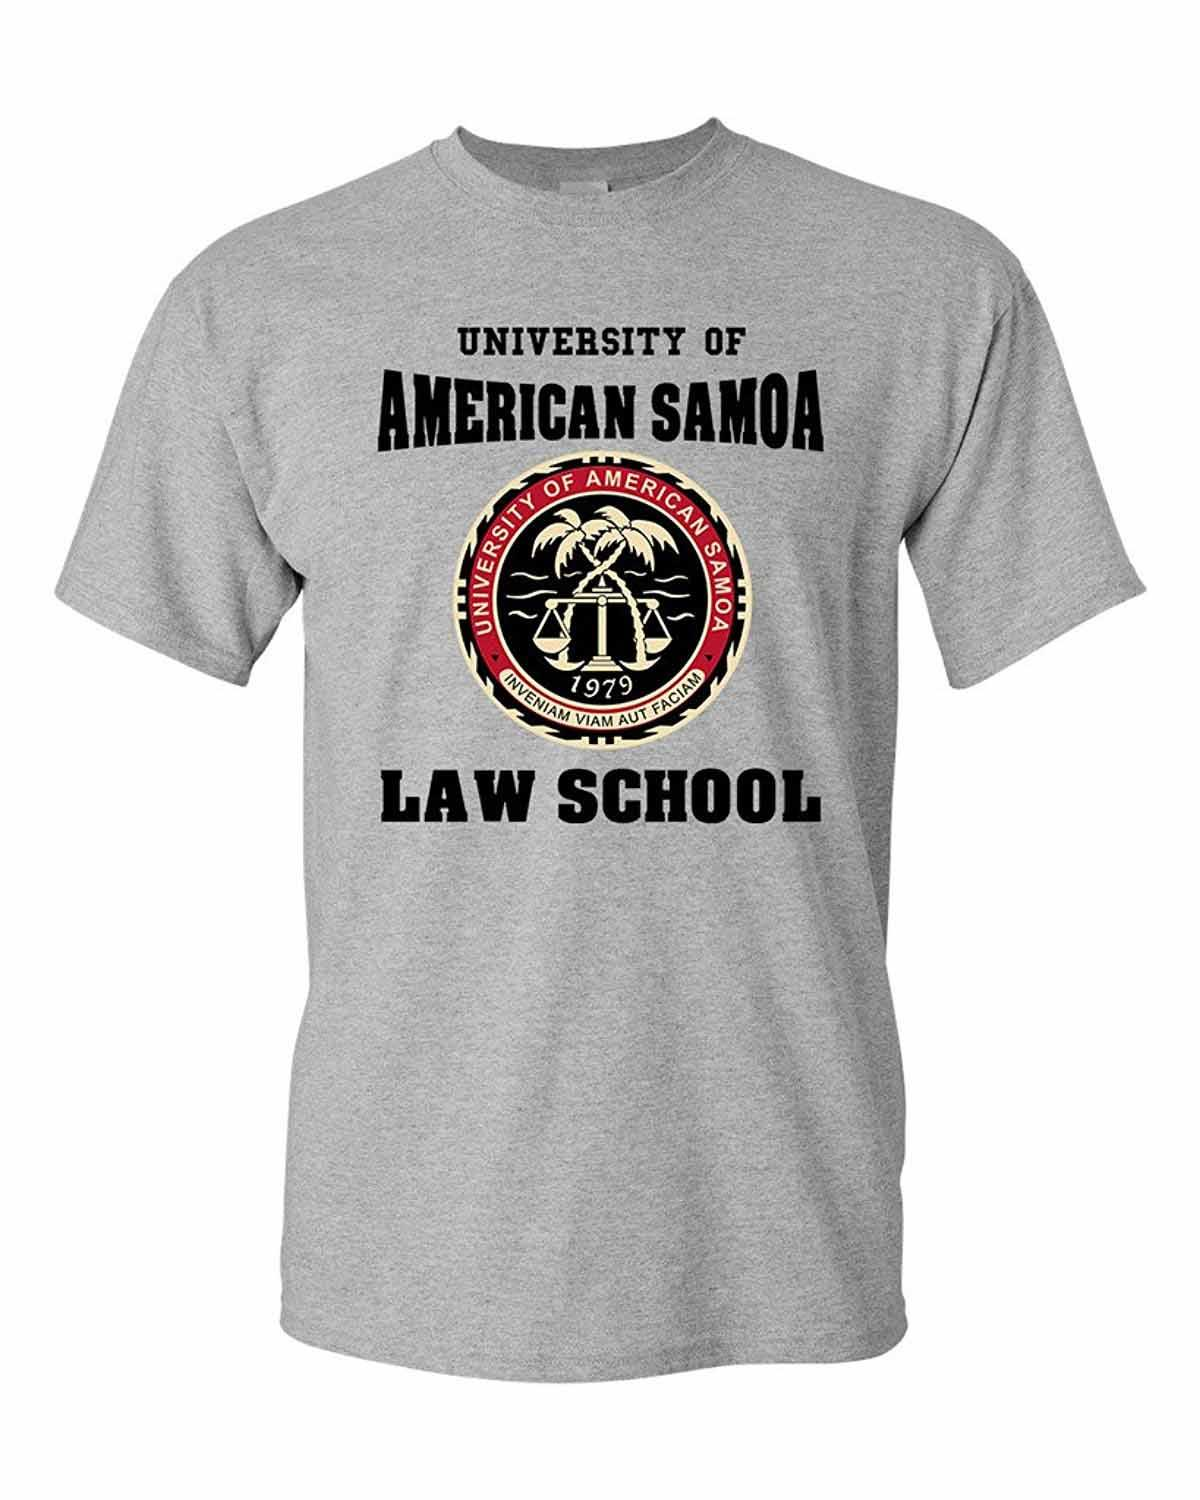 Newest 2019 Fashion Stranger Things T Shirt Men University Of American Samoa Law School Dt Adult T Shirt Tee image